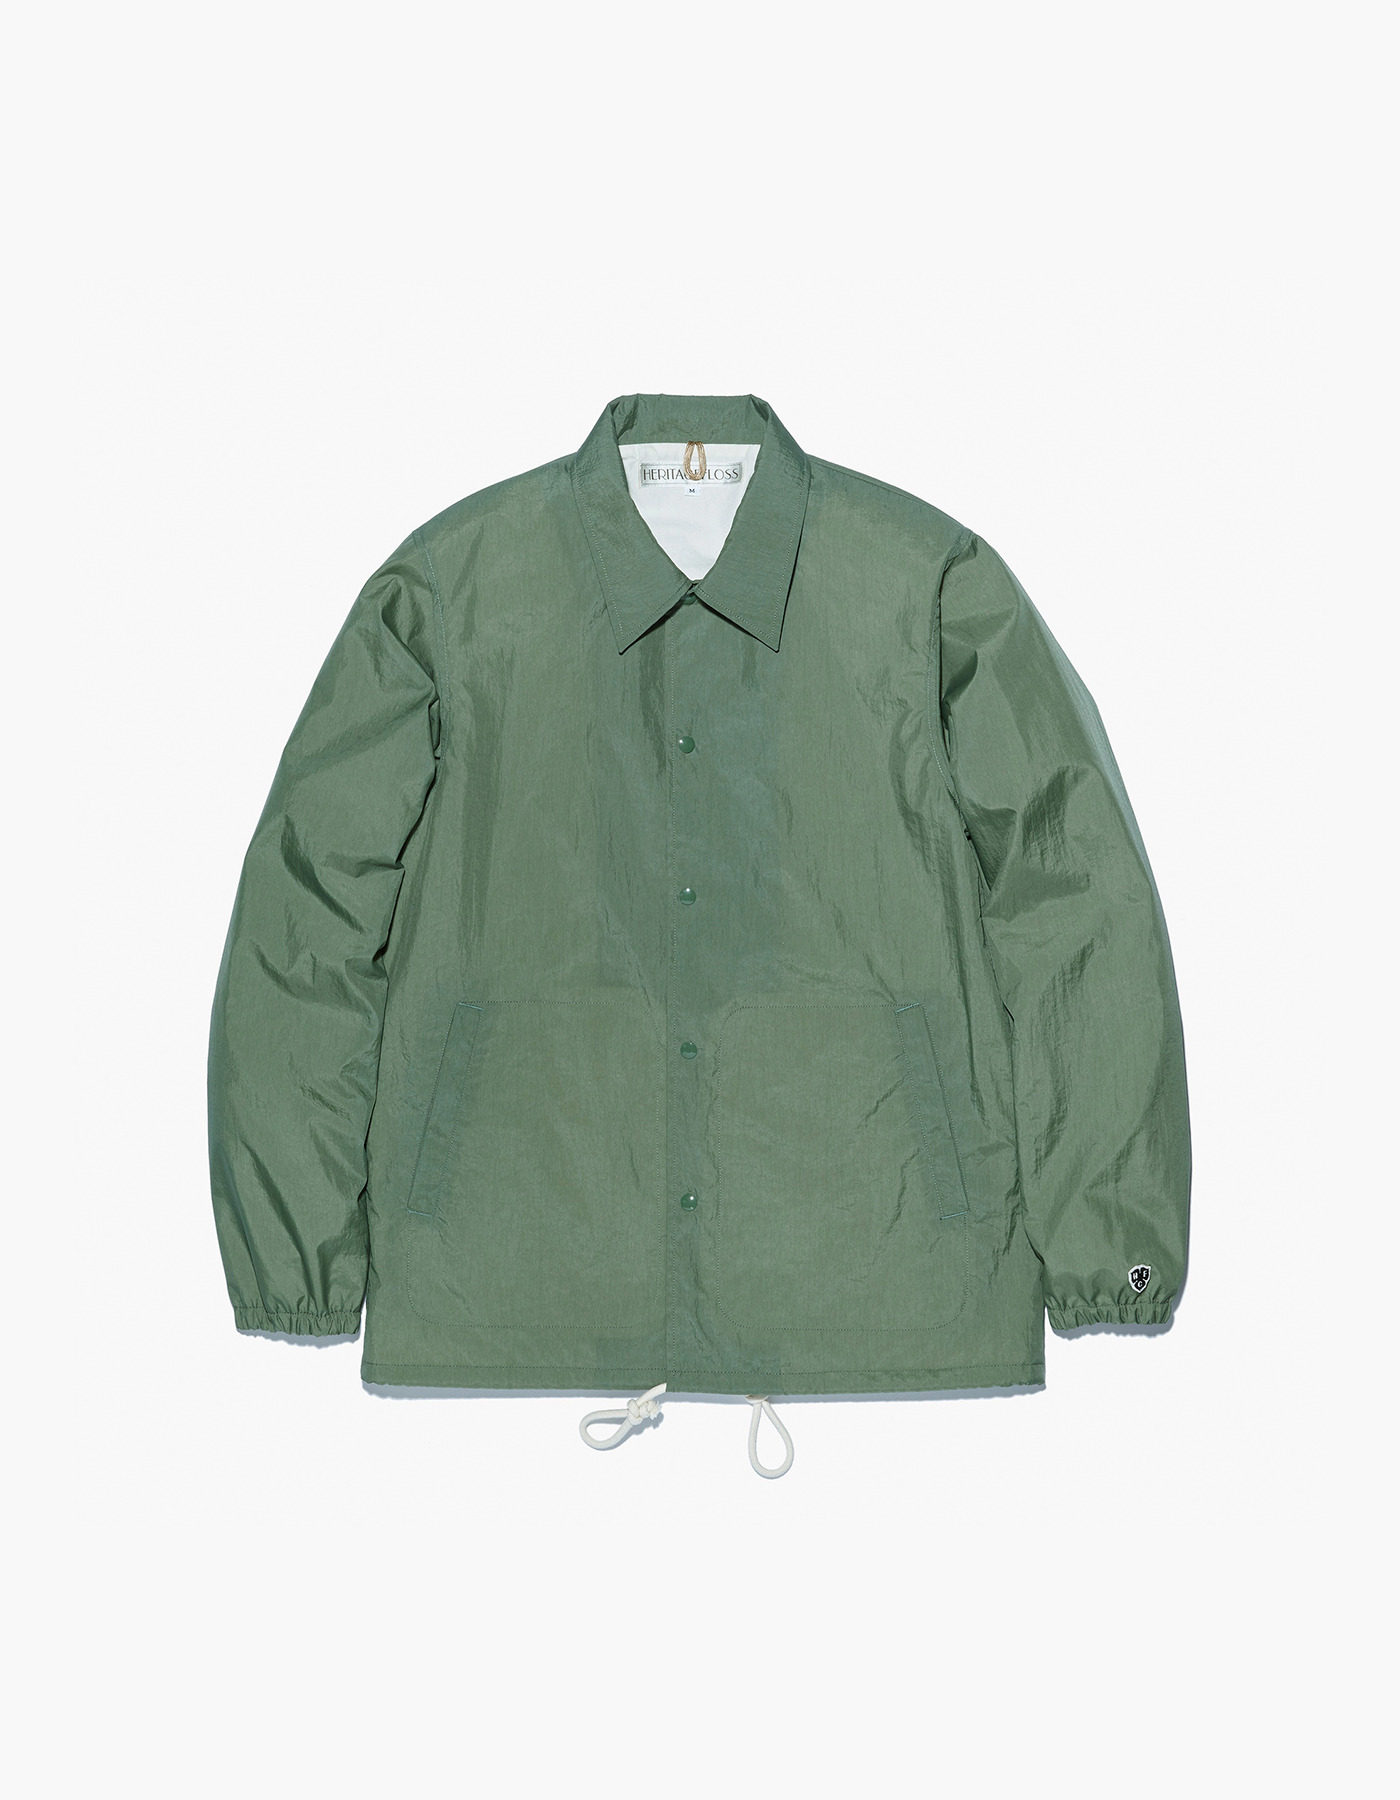 HFC COACH JACKET / OLIVE